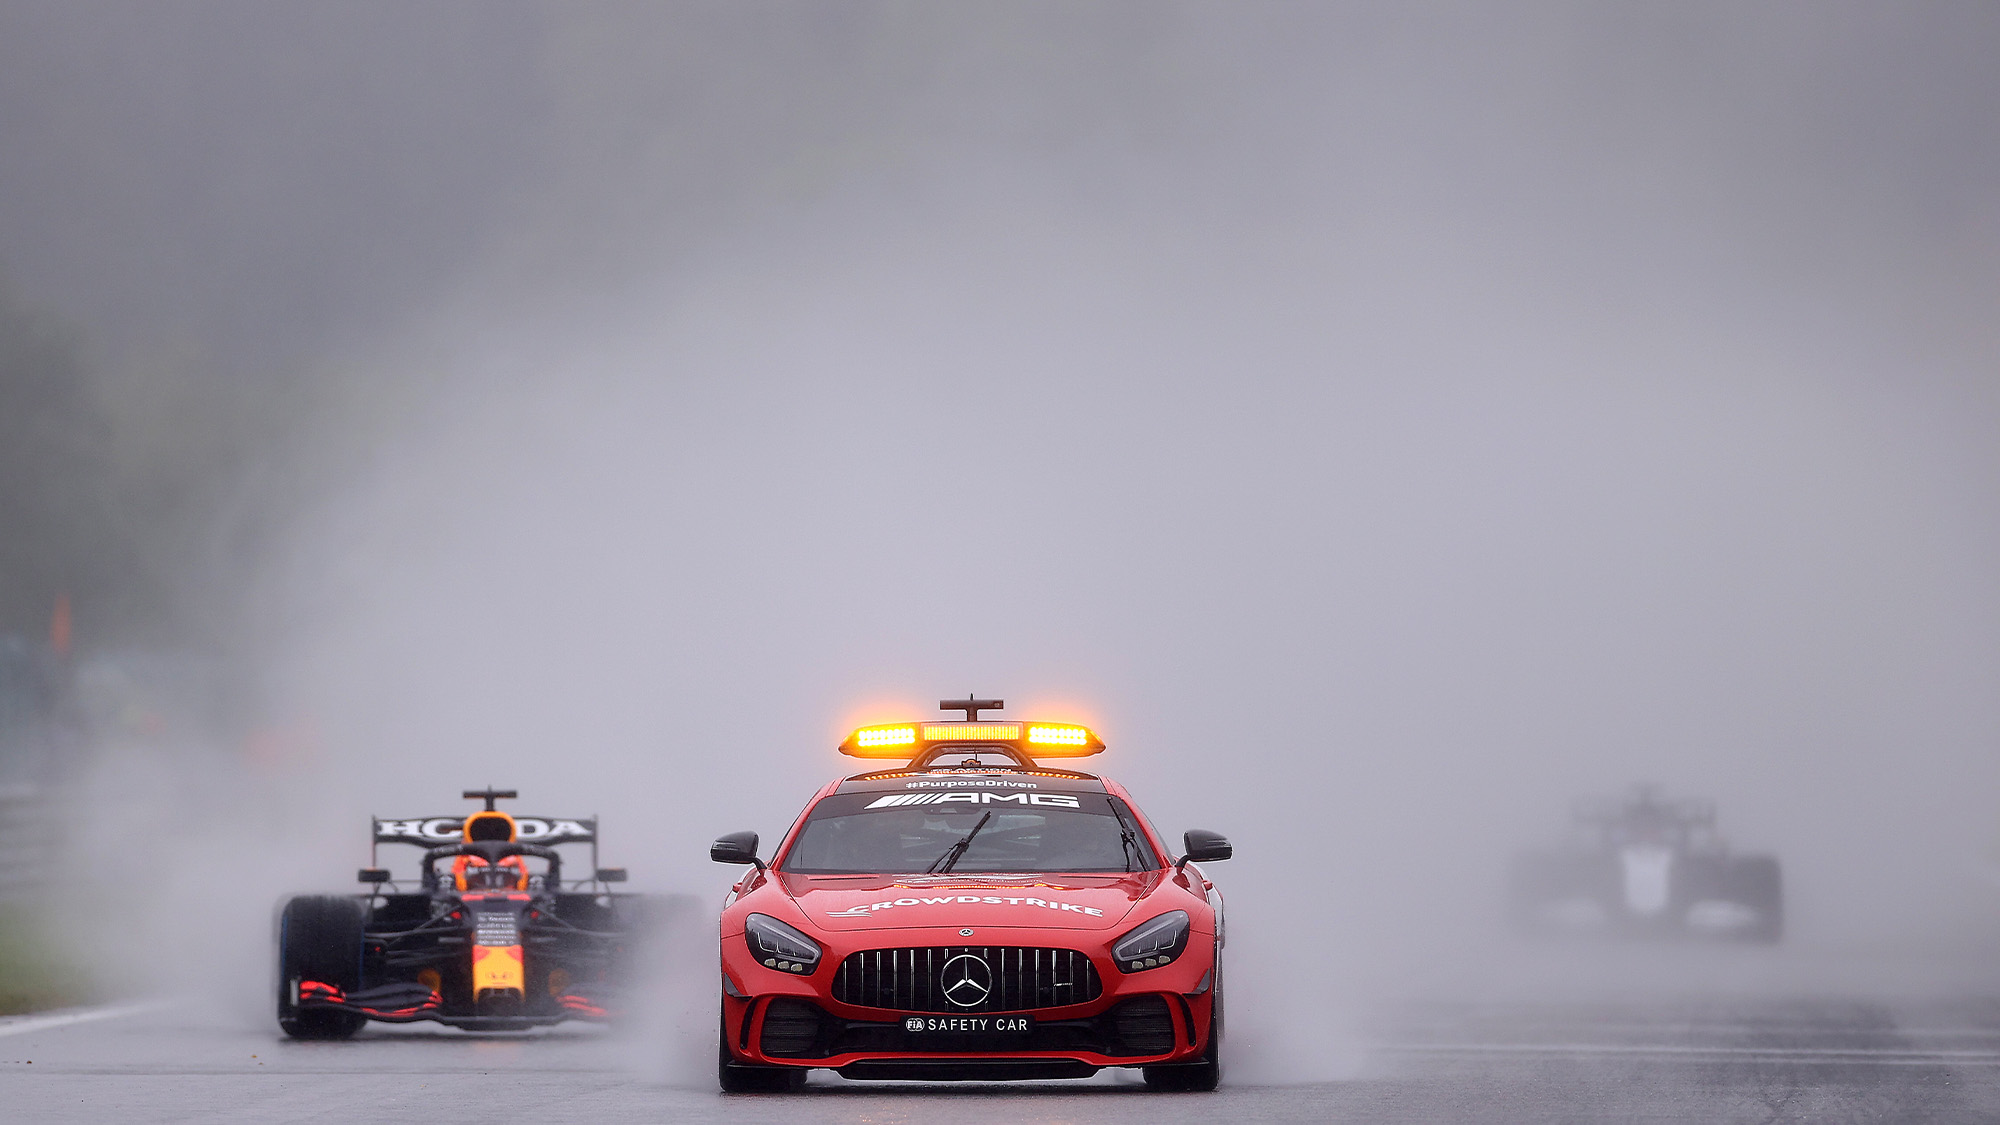 Cars in spray behind safety car at Spa in 2021 Belgian GP